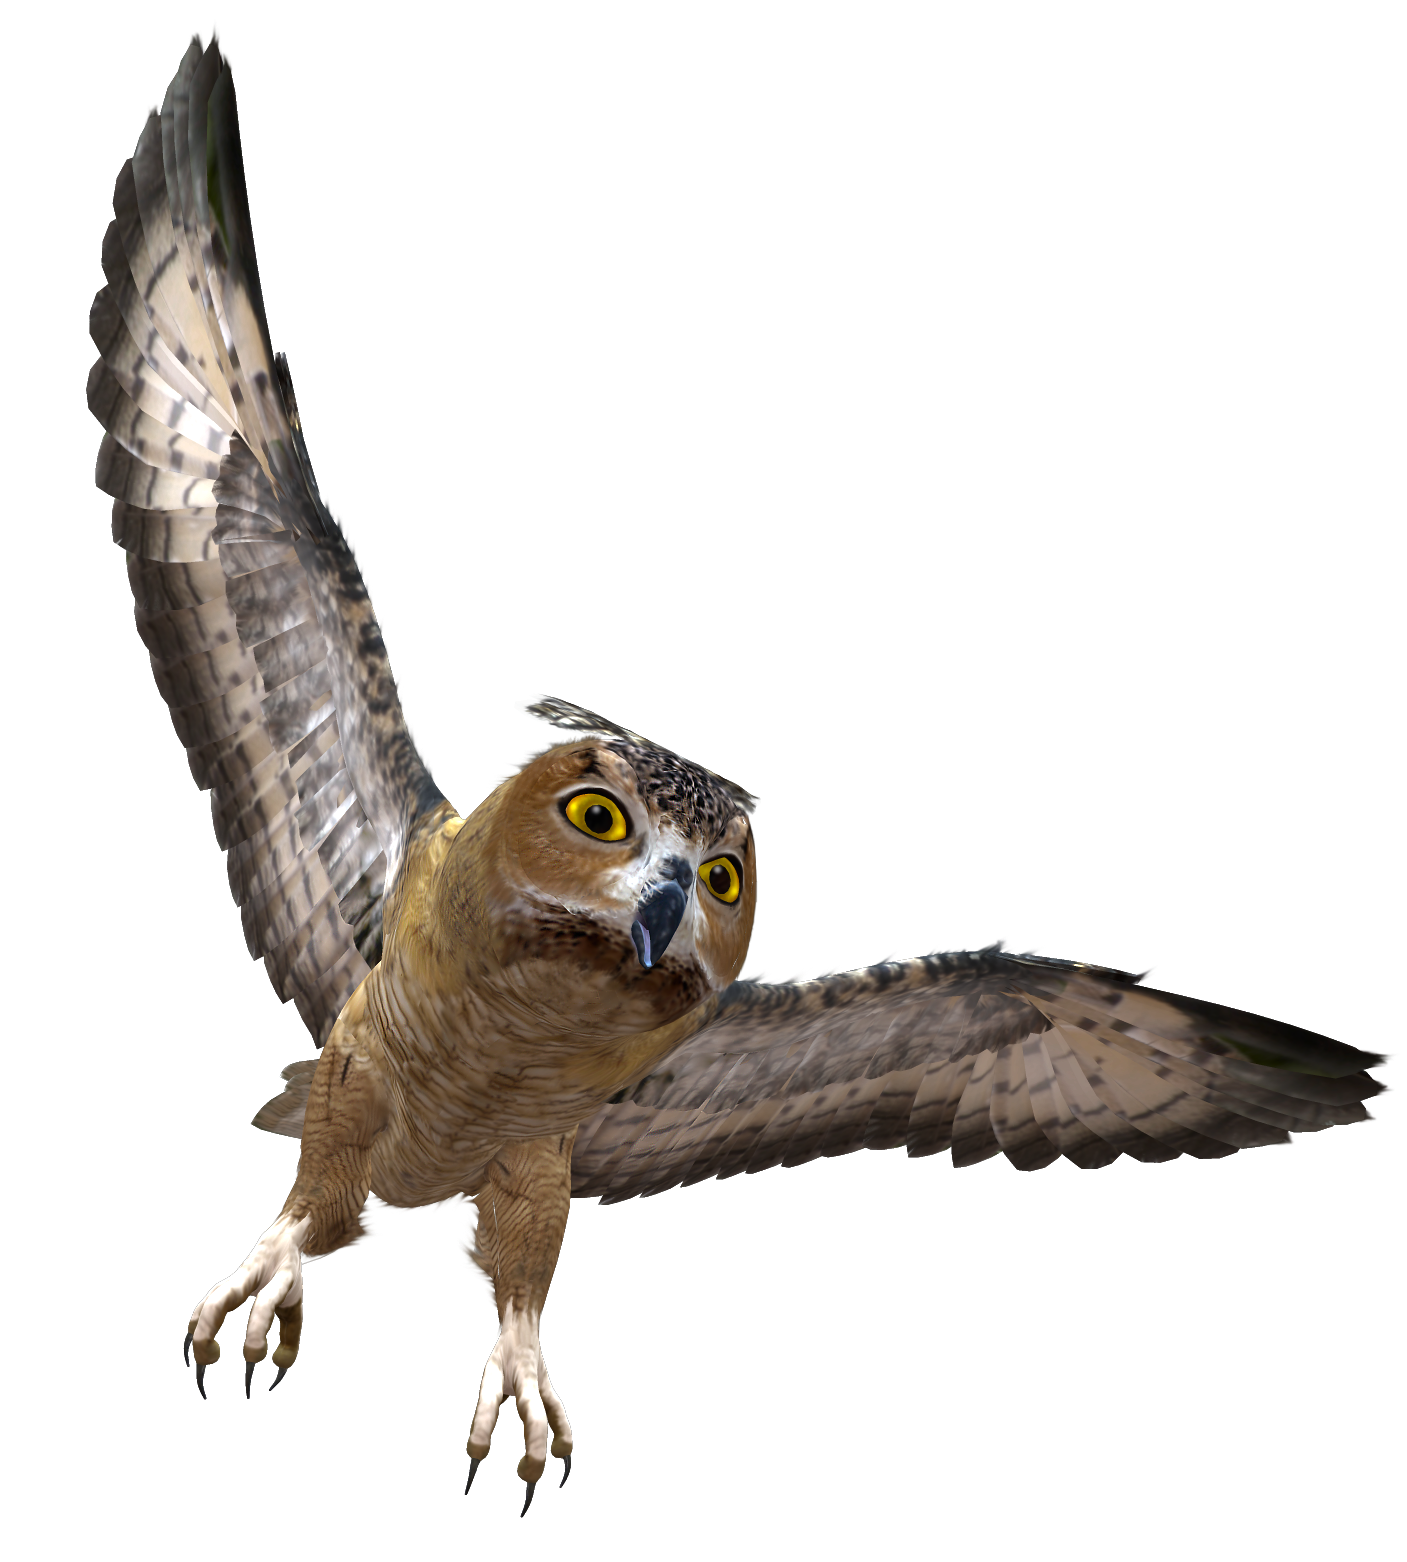 Owl PNG - 15907